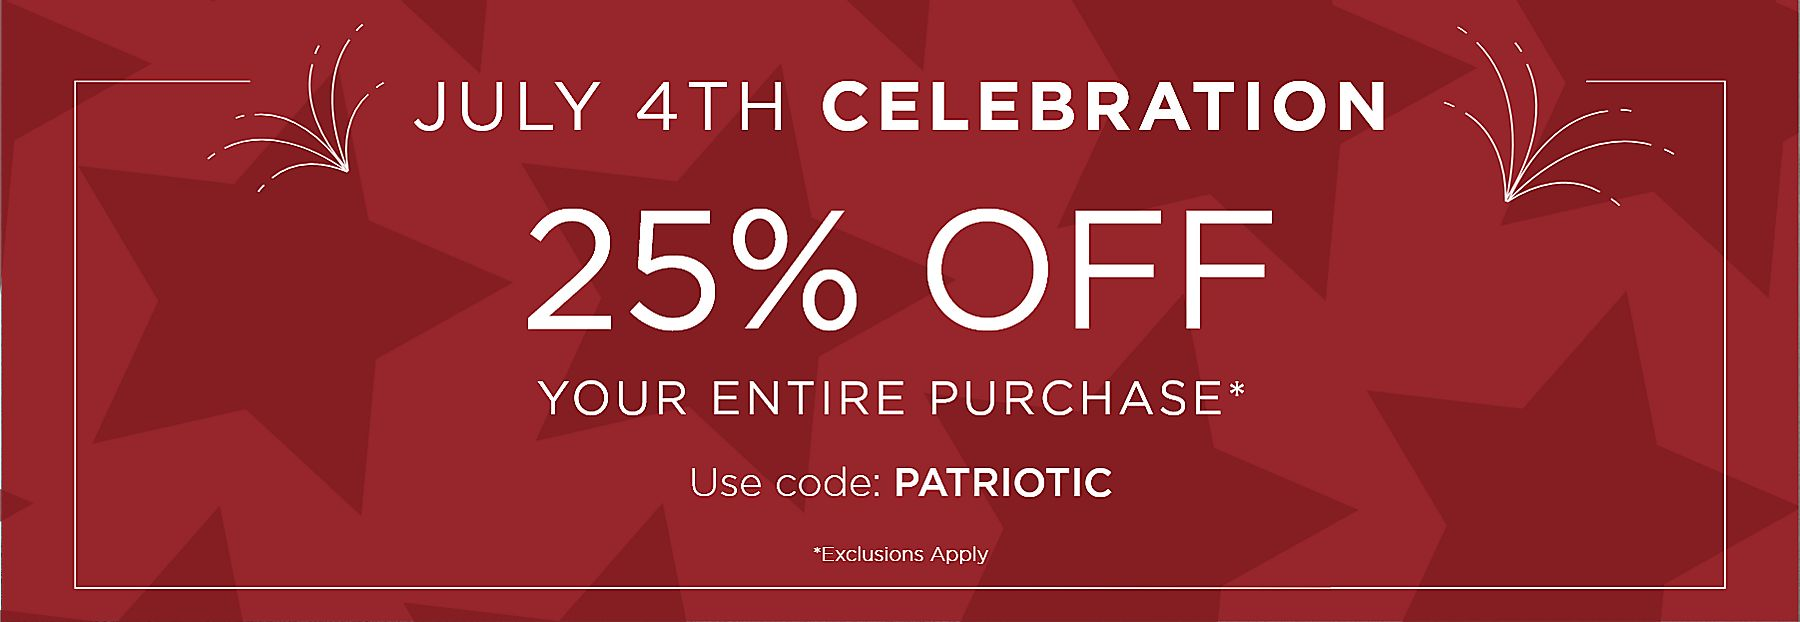 July 4th Celebration 25% Off Your Entire Purchase Use code: PATRIOTIC Exclusions Apply